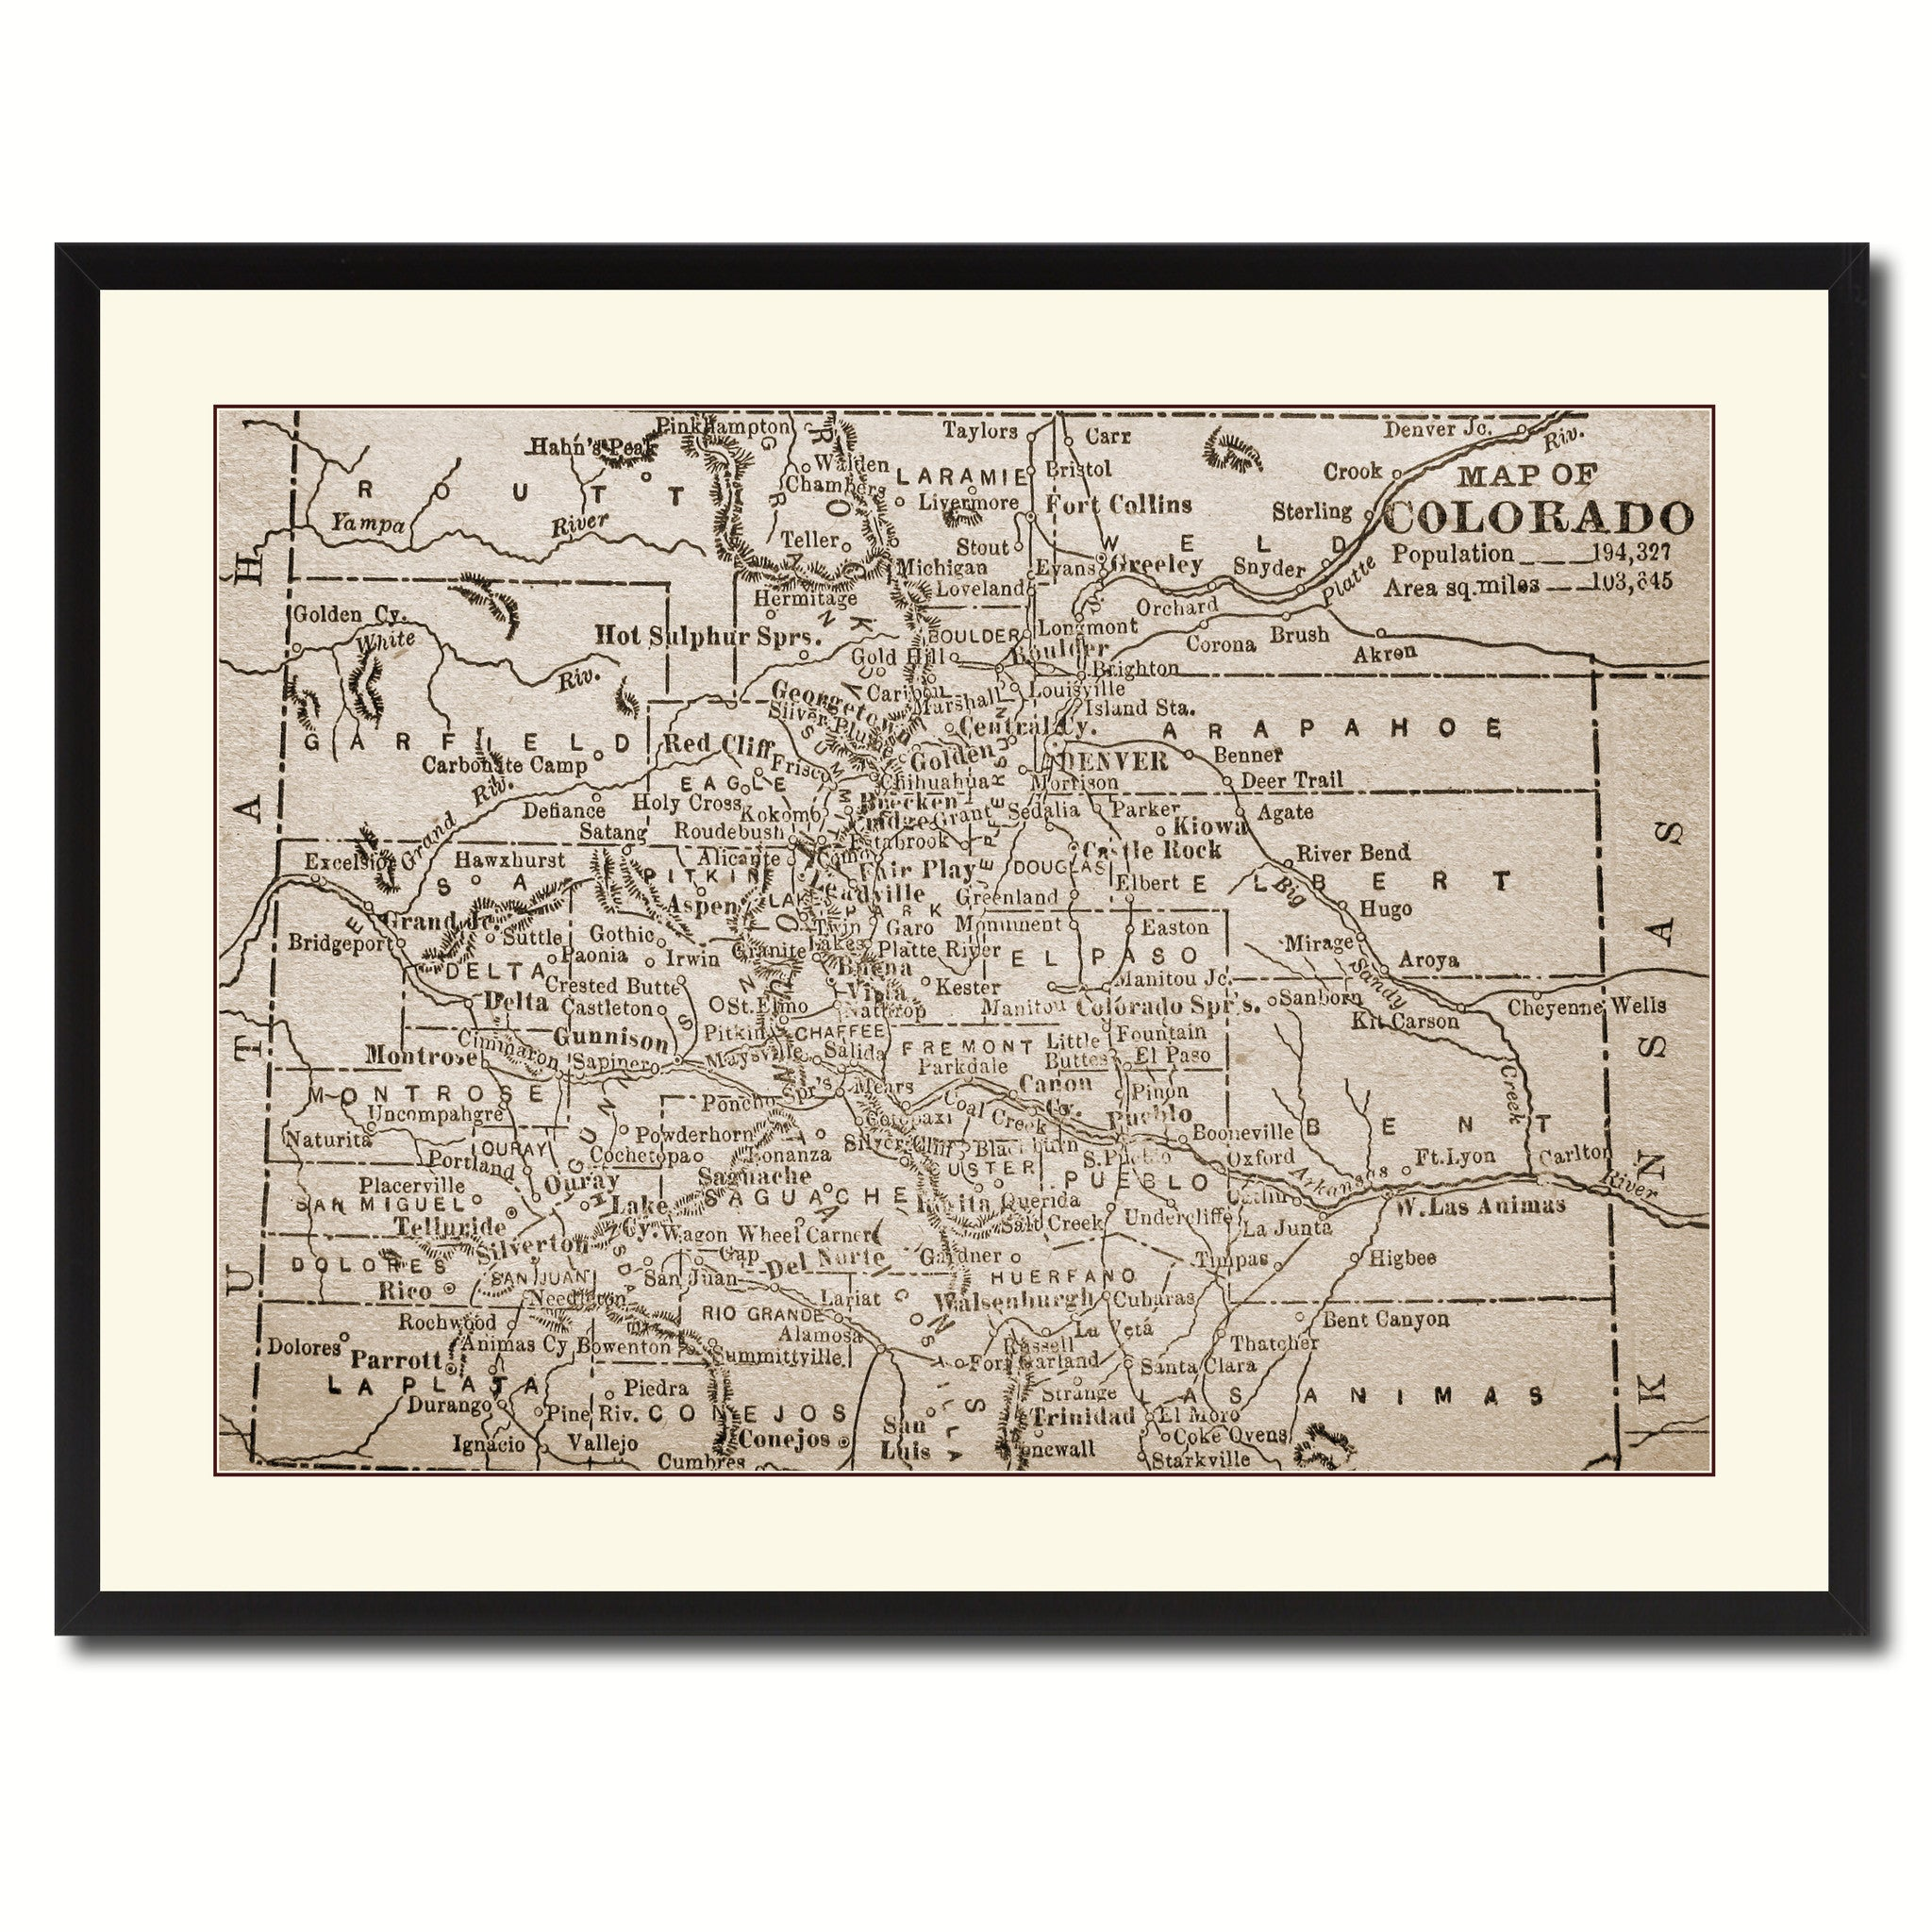 Colorado Vintage Sepia Map Canvas Print, Picture Frame Gifts Home Decor Wall Art Decoration